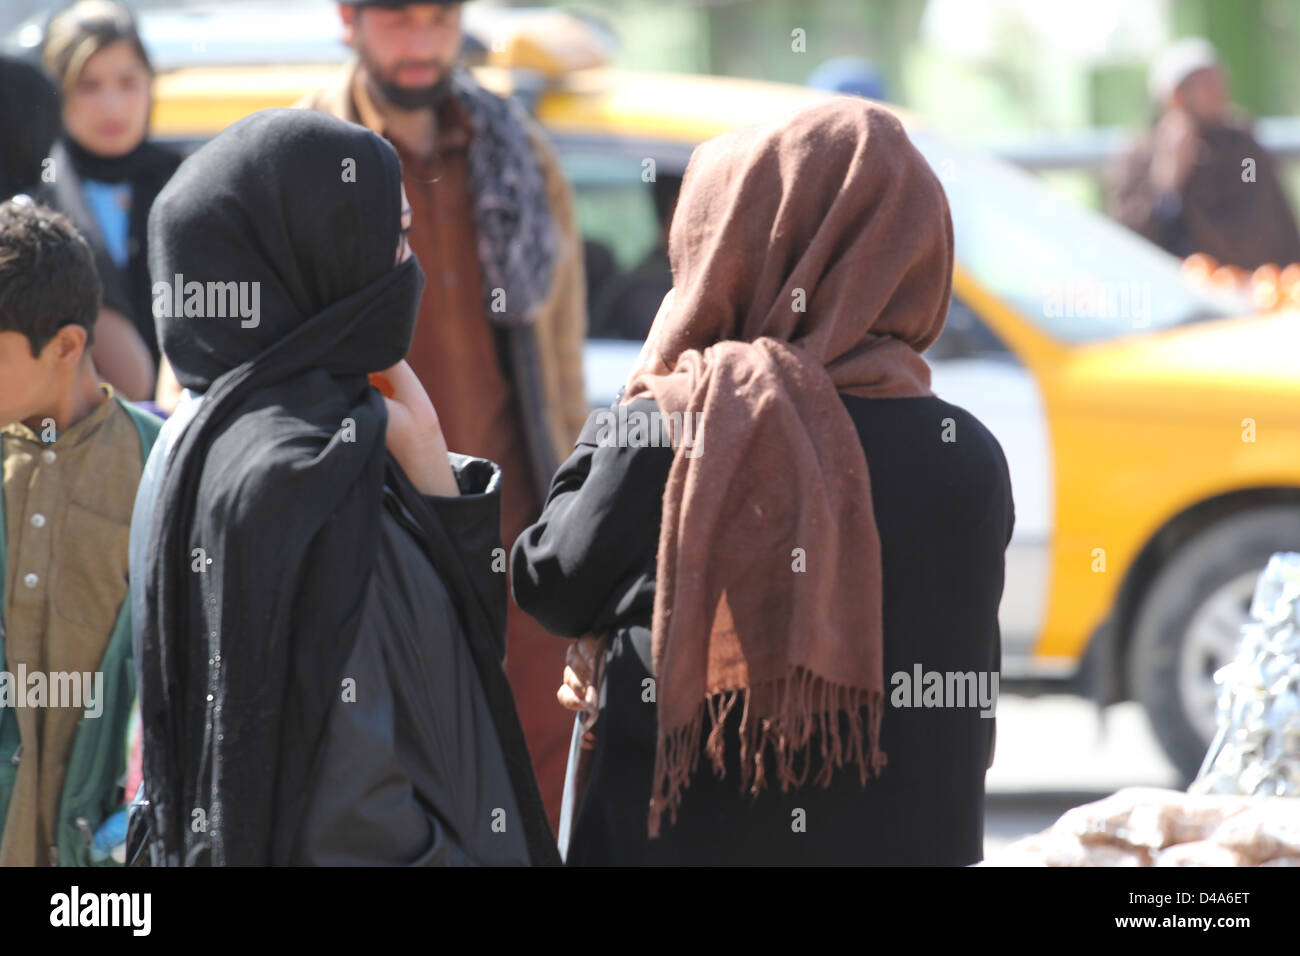 Two veiled women at a street market in Kabul, Afghanistan. - Stock Image